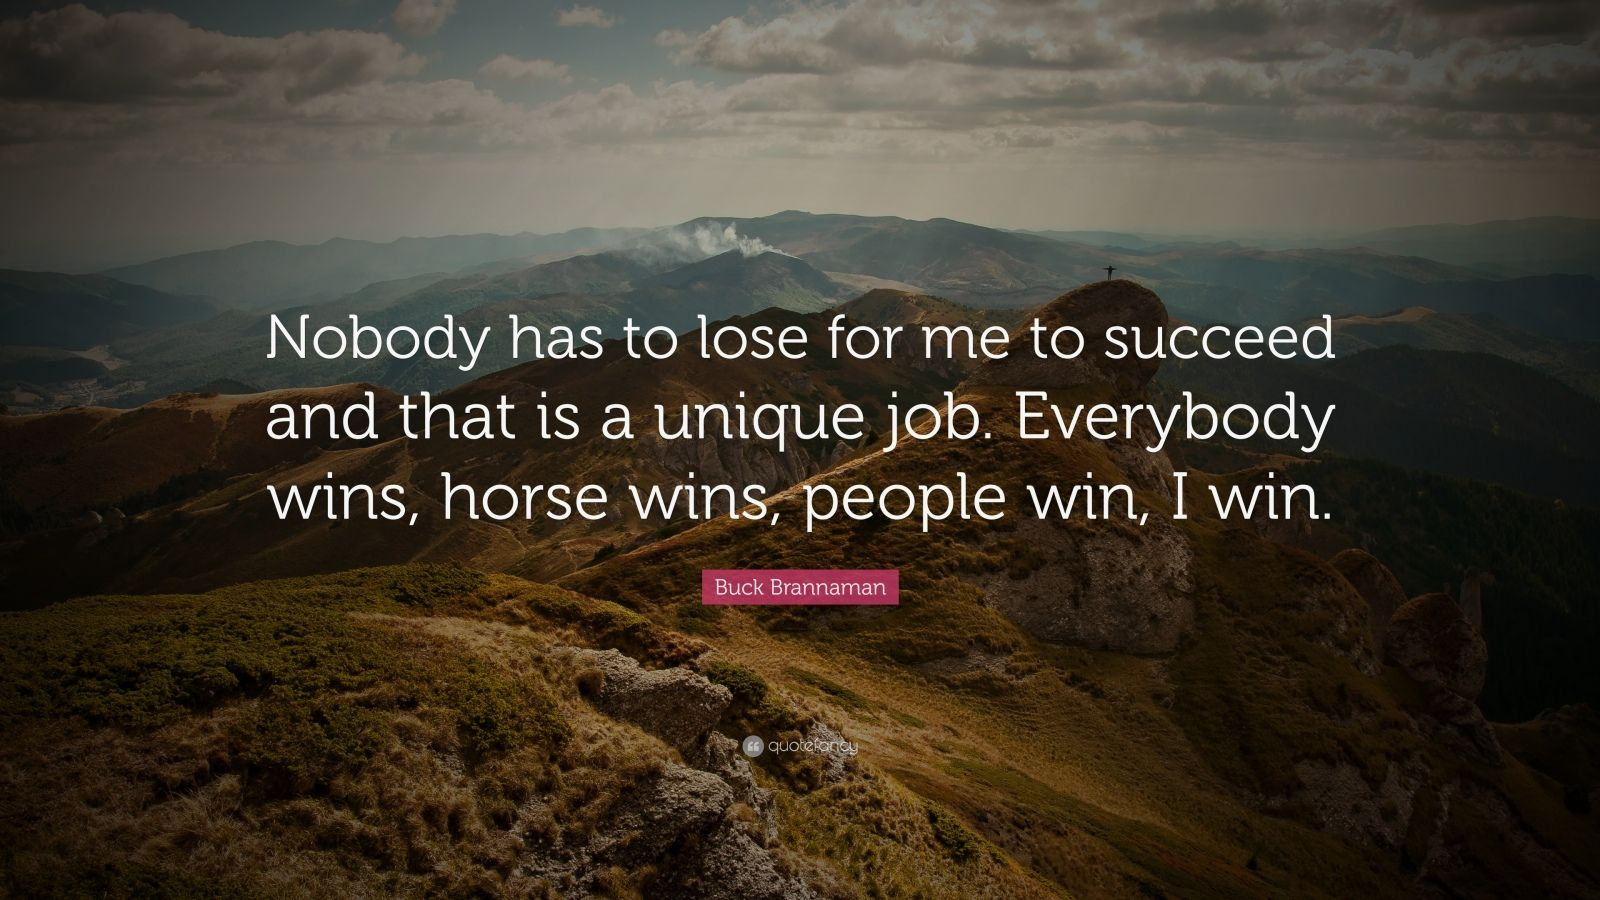 """Buck Brannaman Quote: """"Nobody has to lose for me to succeed and that is a unique job. Everybody wins, horse wins, people win, I win."""""""